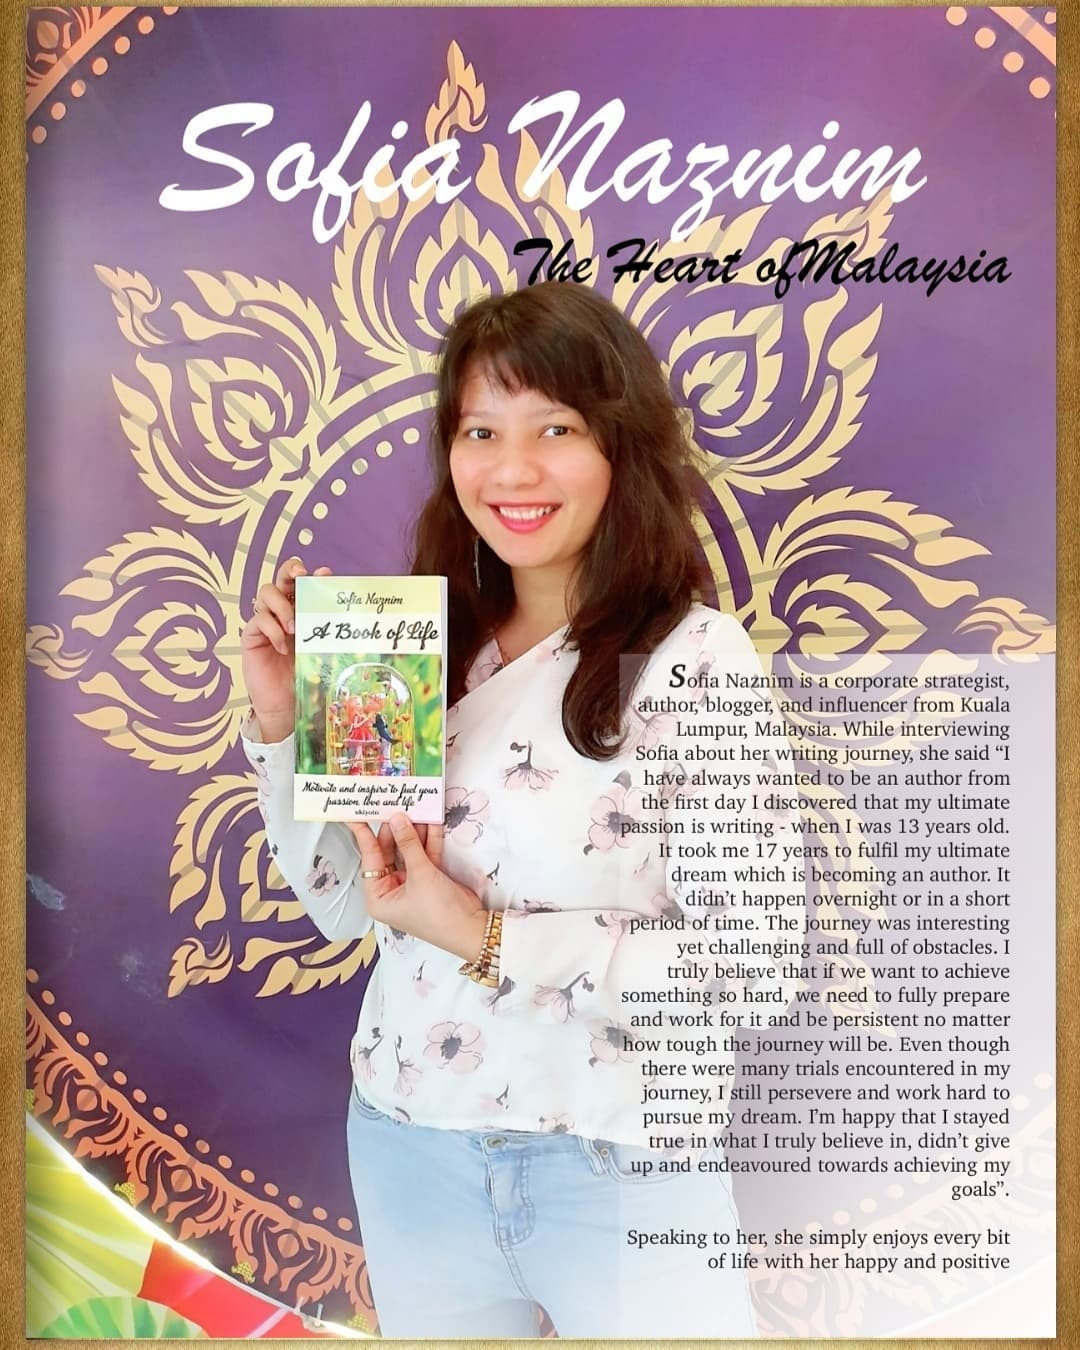 A Book of Life by Sofia Naznim Featured in the Litteratura Asia Magazine!